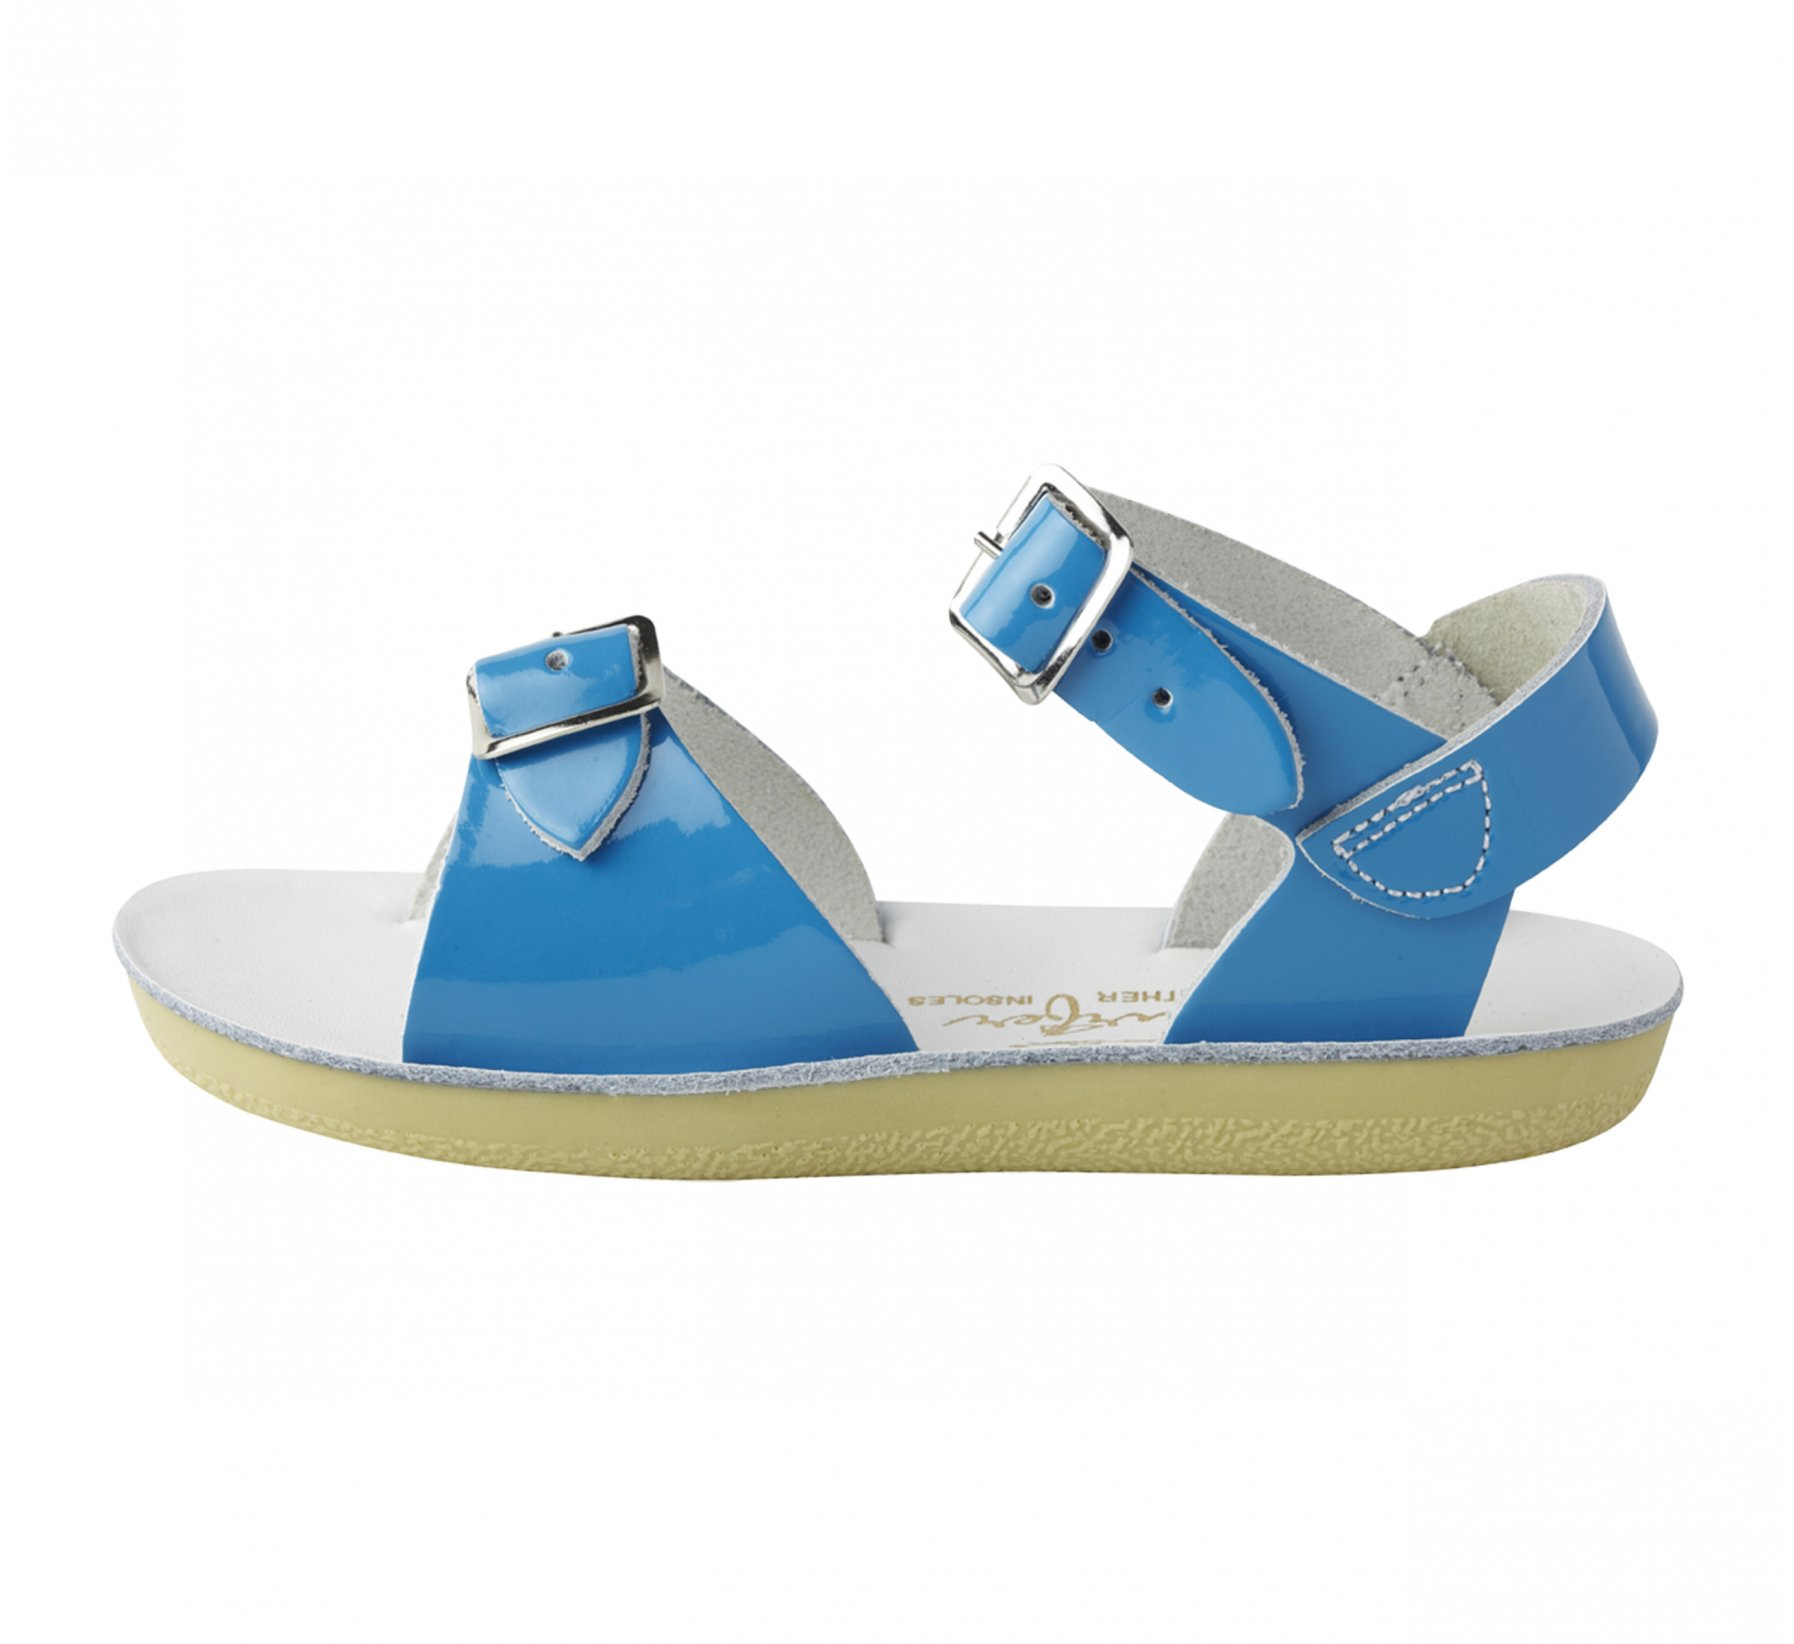 Surfer Turquoise Brillant - Salt Water Sandals